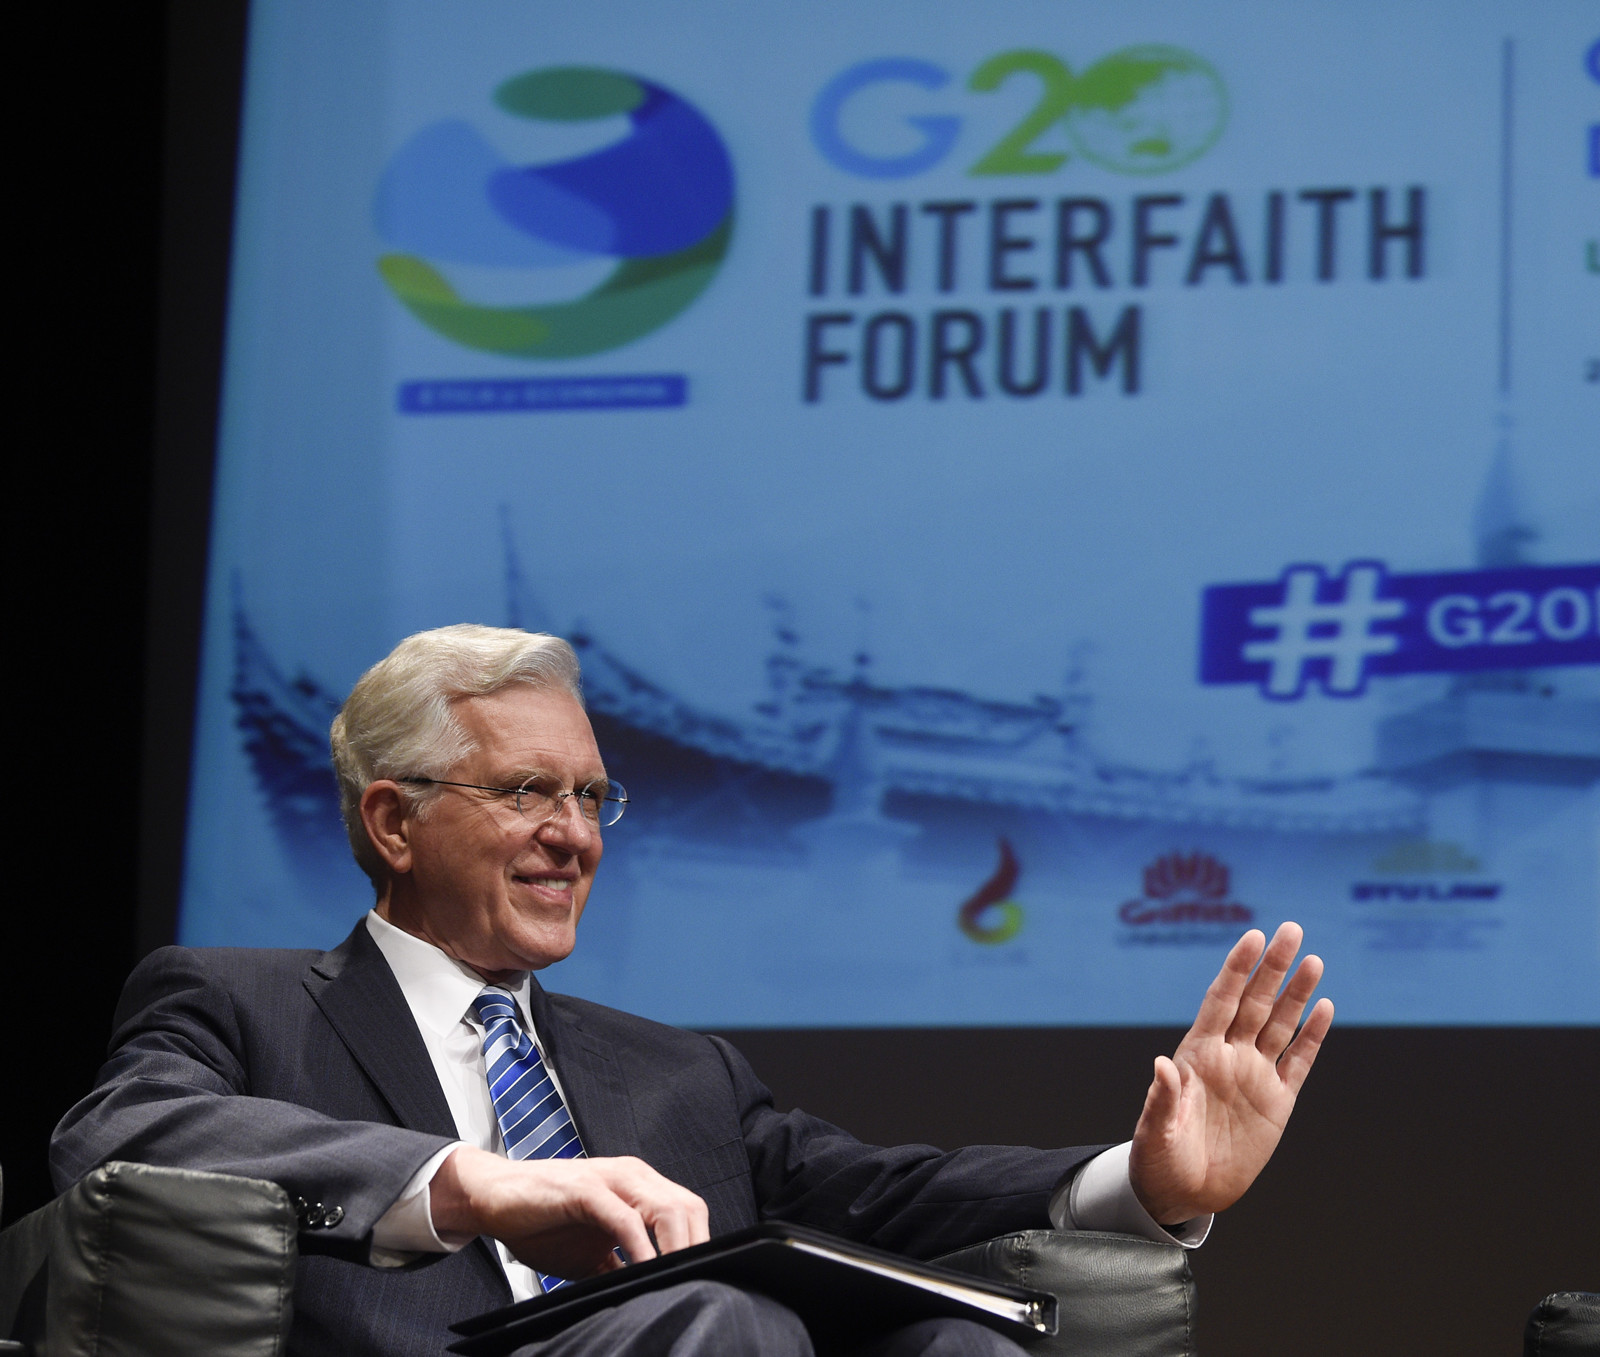 Elder D. Todd Christofferson of the Quorum of the Twelve Apostles greets the audience before his speech at the G20 Interfaith Forum in Buenos Aires, Argentina, on Wednesday, Sept. 26, 2018.